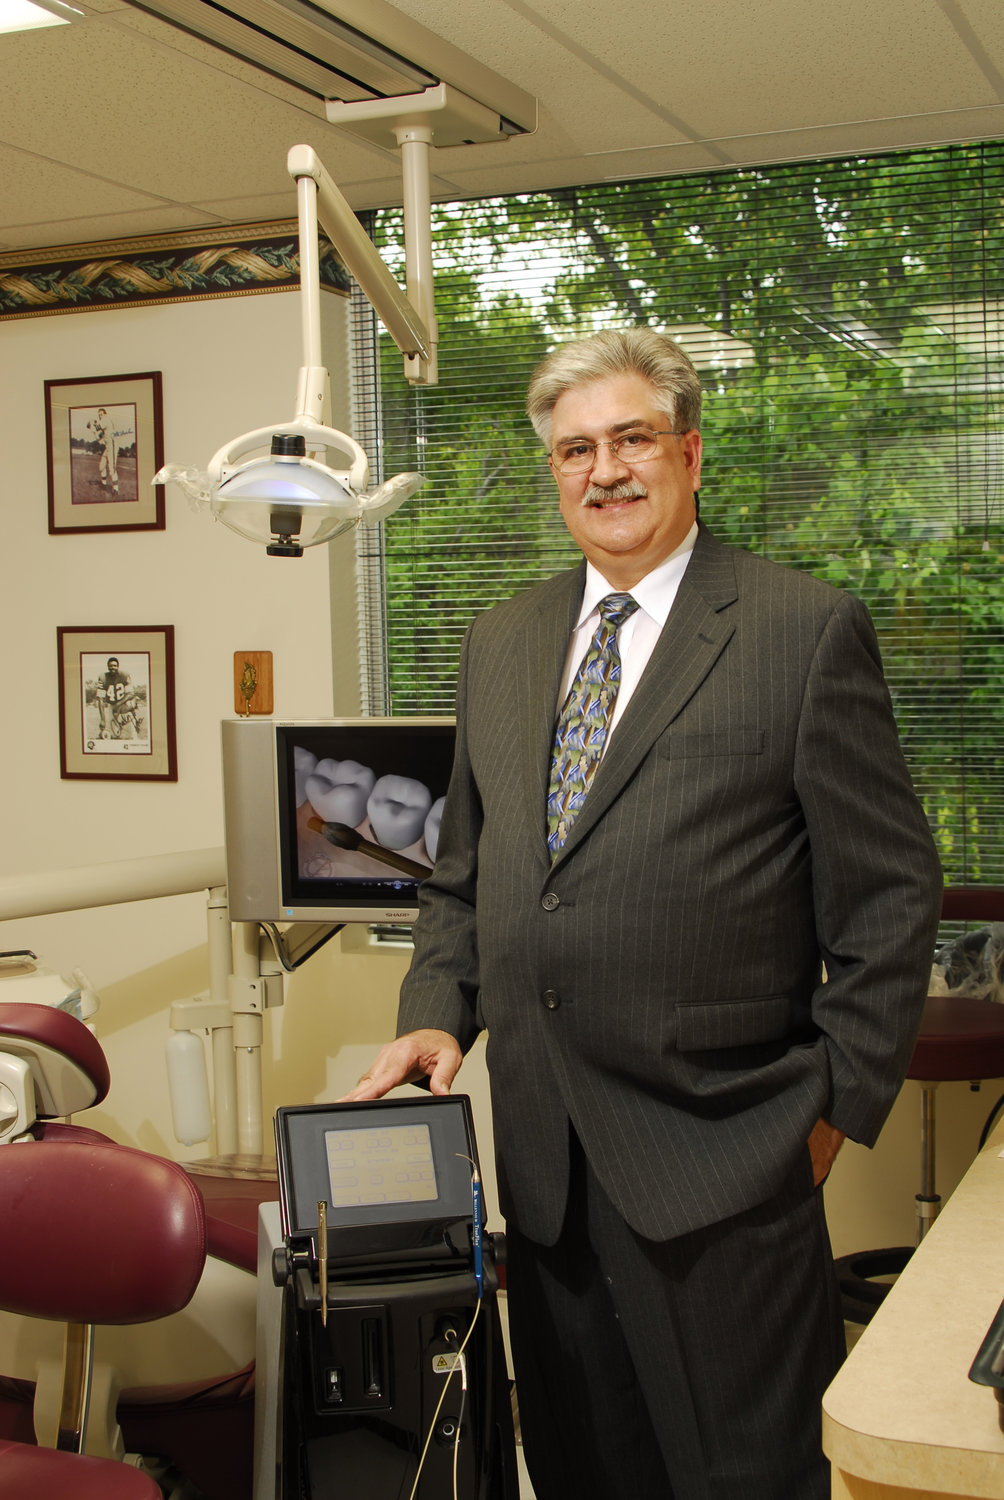 As the dental industry has evolved, Dr. Jeffrey Cranska has advanced his methods and knowledge.